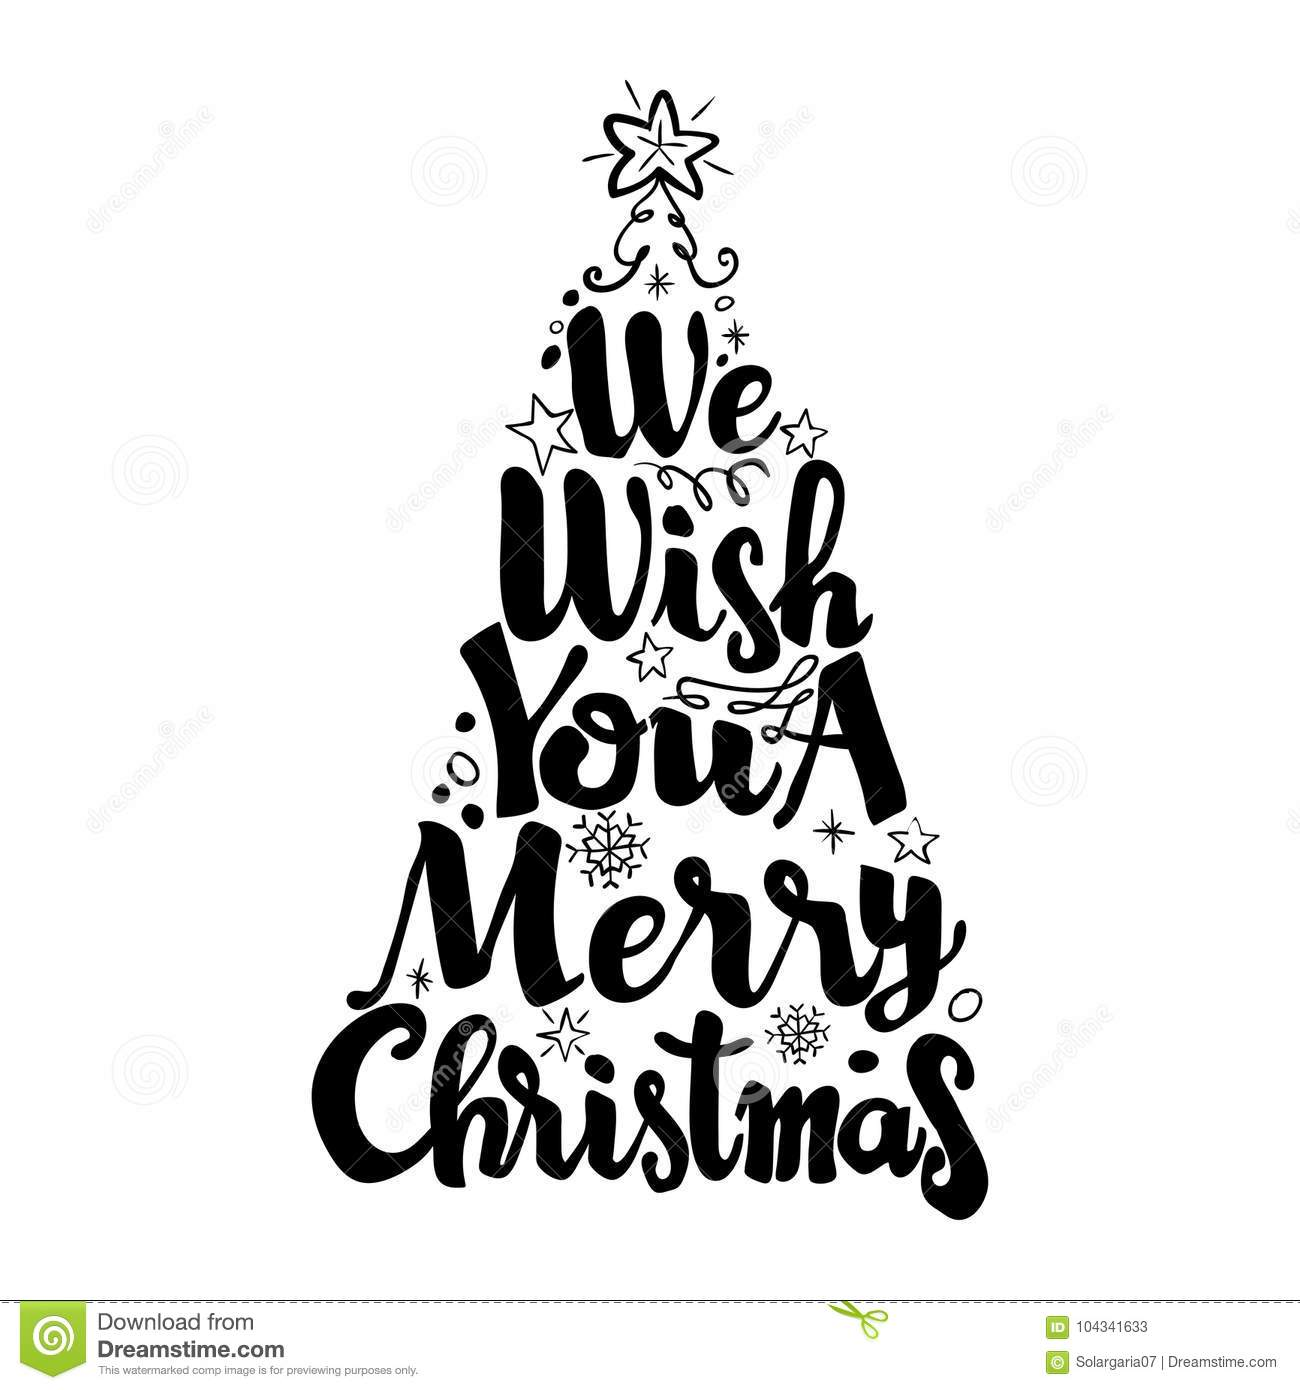 Merry Christmas Lettering.We Wish You A Merry Christmas Lettering Vector Stock Vector